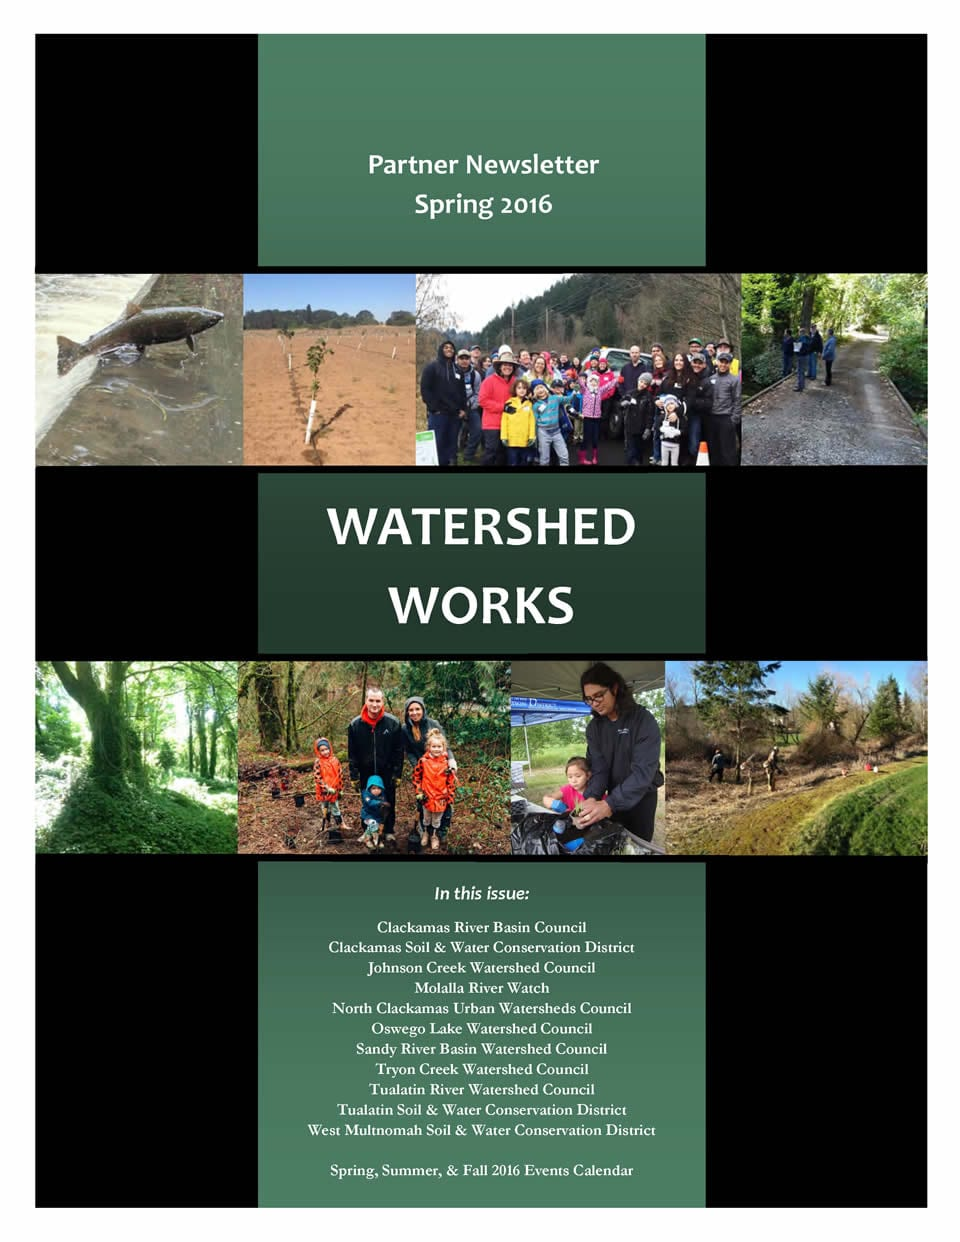 WATERSHED WORKS